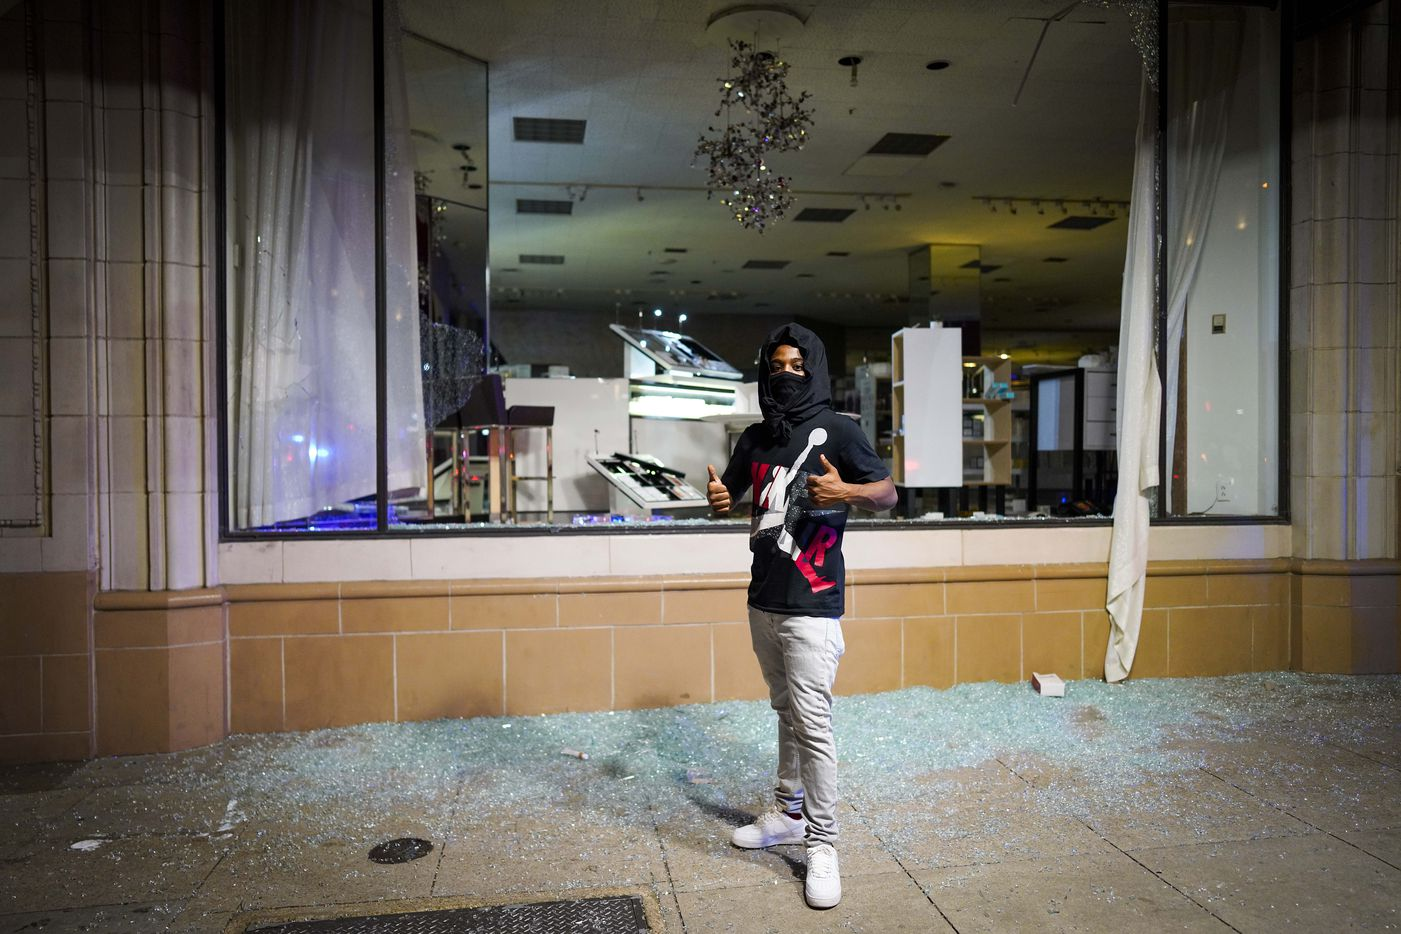 A man poses for a photo amidst broken glass after windows were smashed at the Nieman Marcus store downtown following a protest against police brutality in the early morning hours of Saturday, May 30, 2020, in Dallas. The protest against police brutality was organized by Next Generation Action Network in response to the in-custody death of George Floyd in Minneapolis.